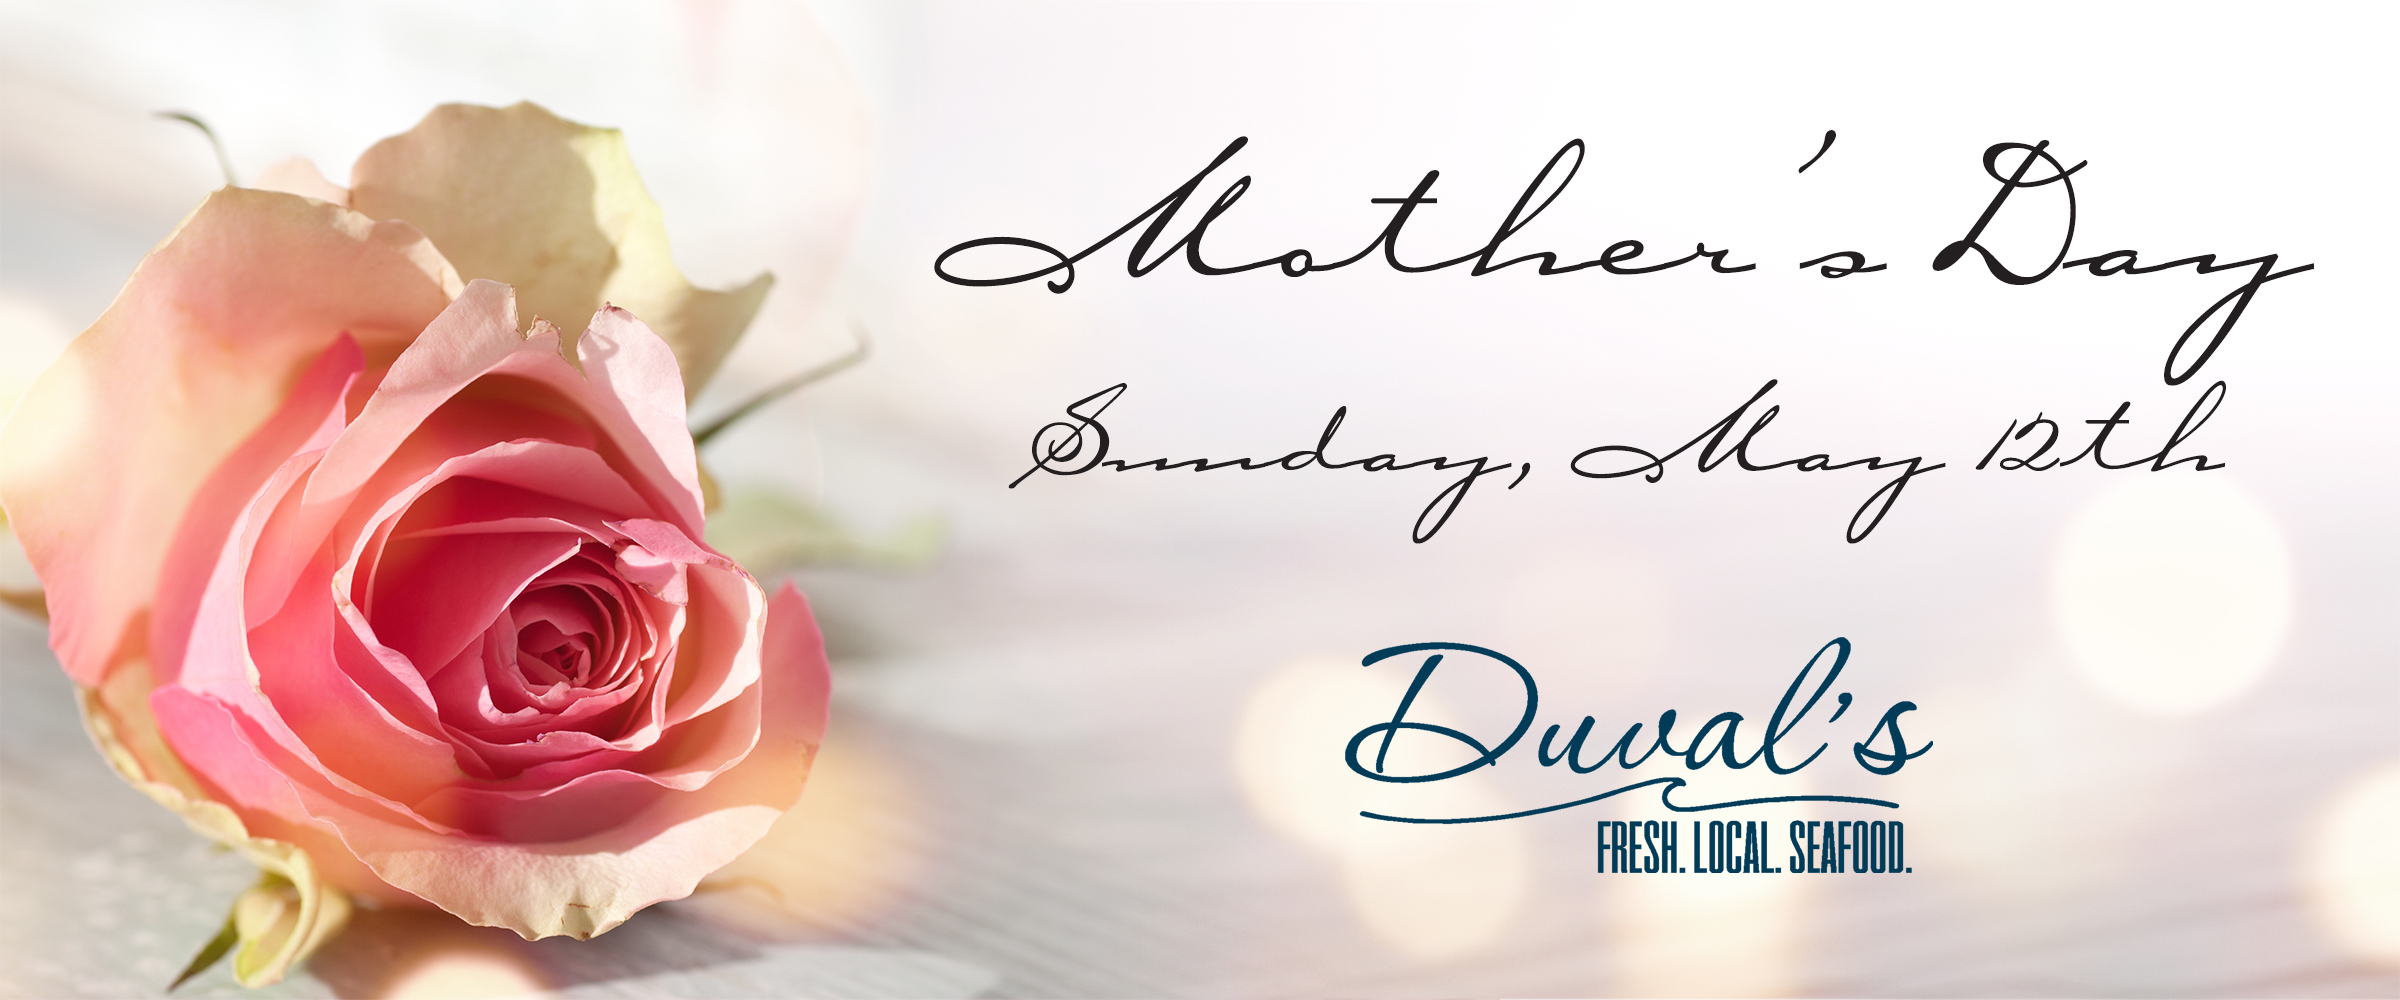 Celebrate Mother's Day with us for Brunch or Dinner.